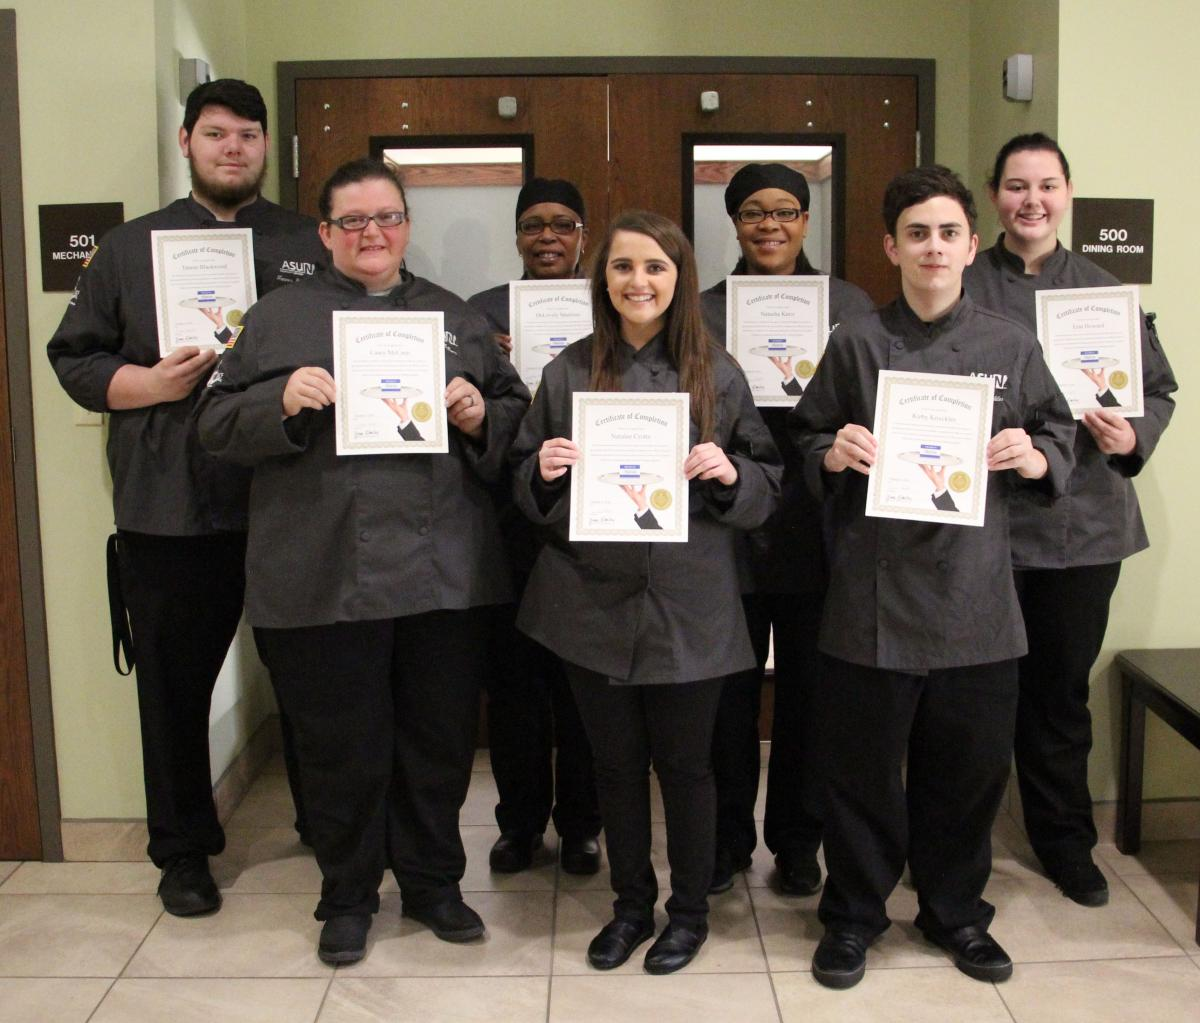 Students received the First Impression Certification.